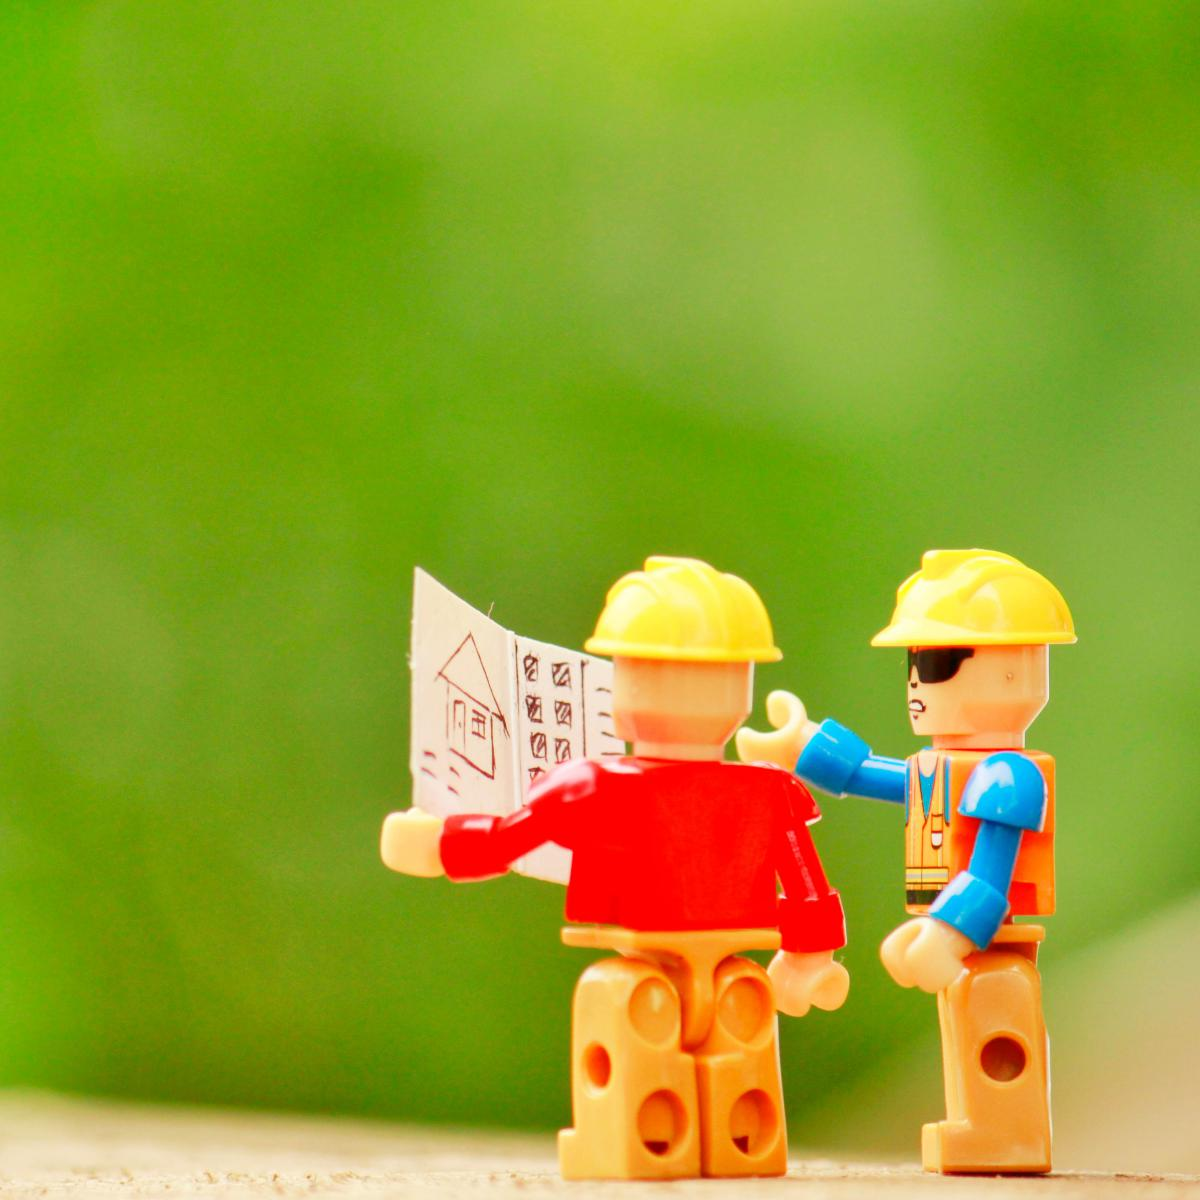 two lego men looking at a piece of paper